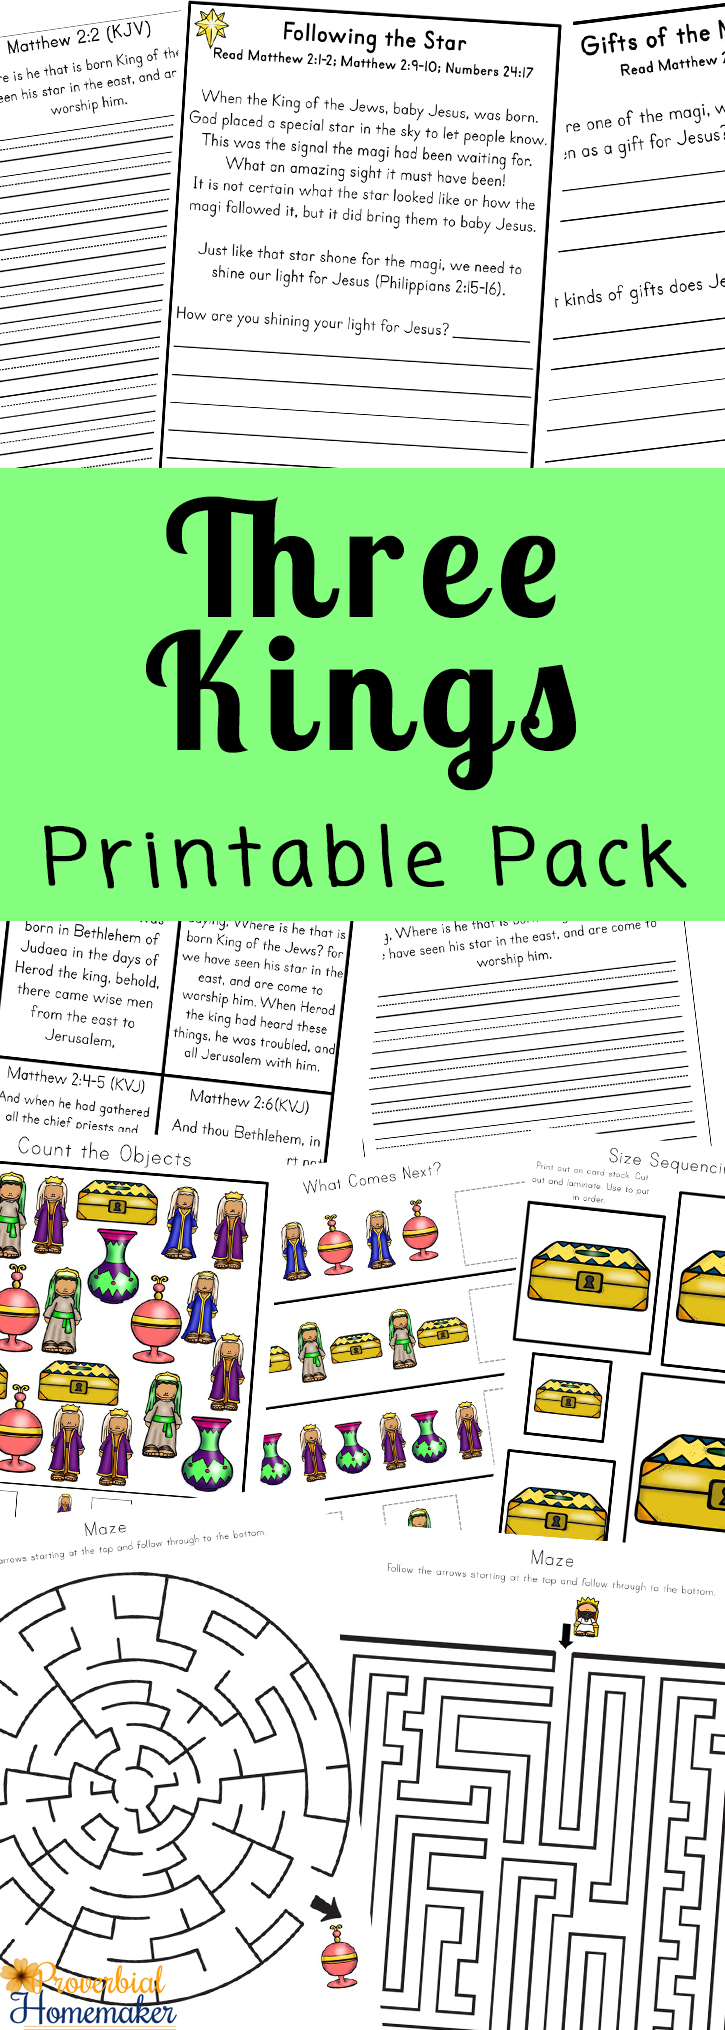 image relating to Printable Bible Study named 3 Kings Printable Pack Bible Research - Proverbial Homemaker